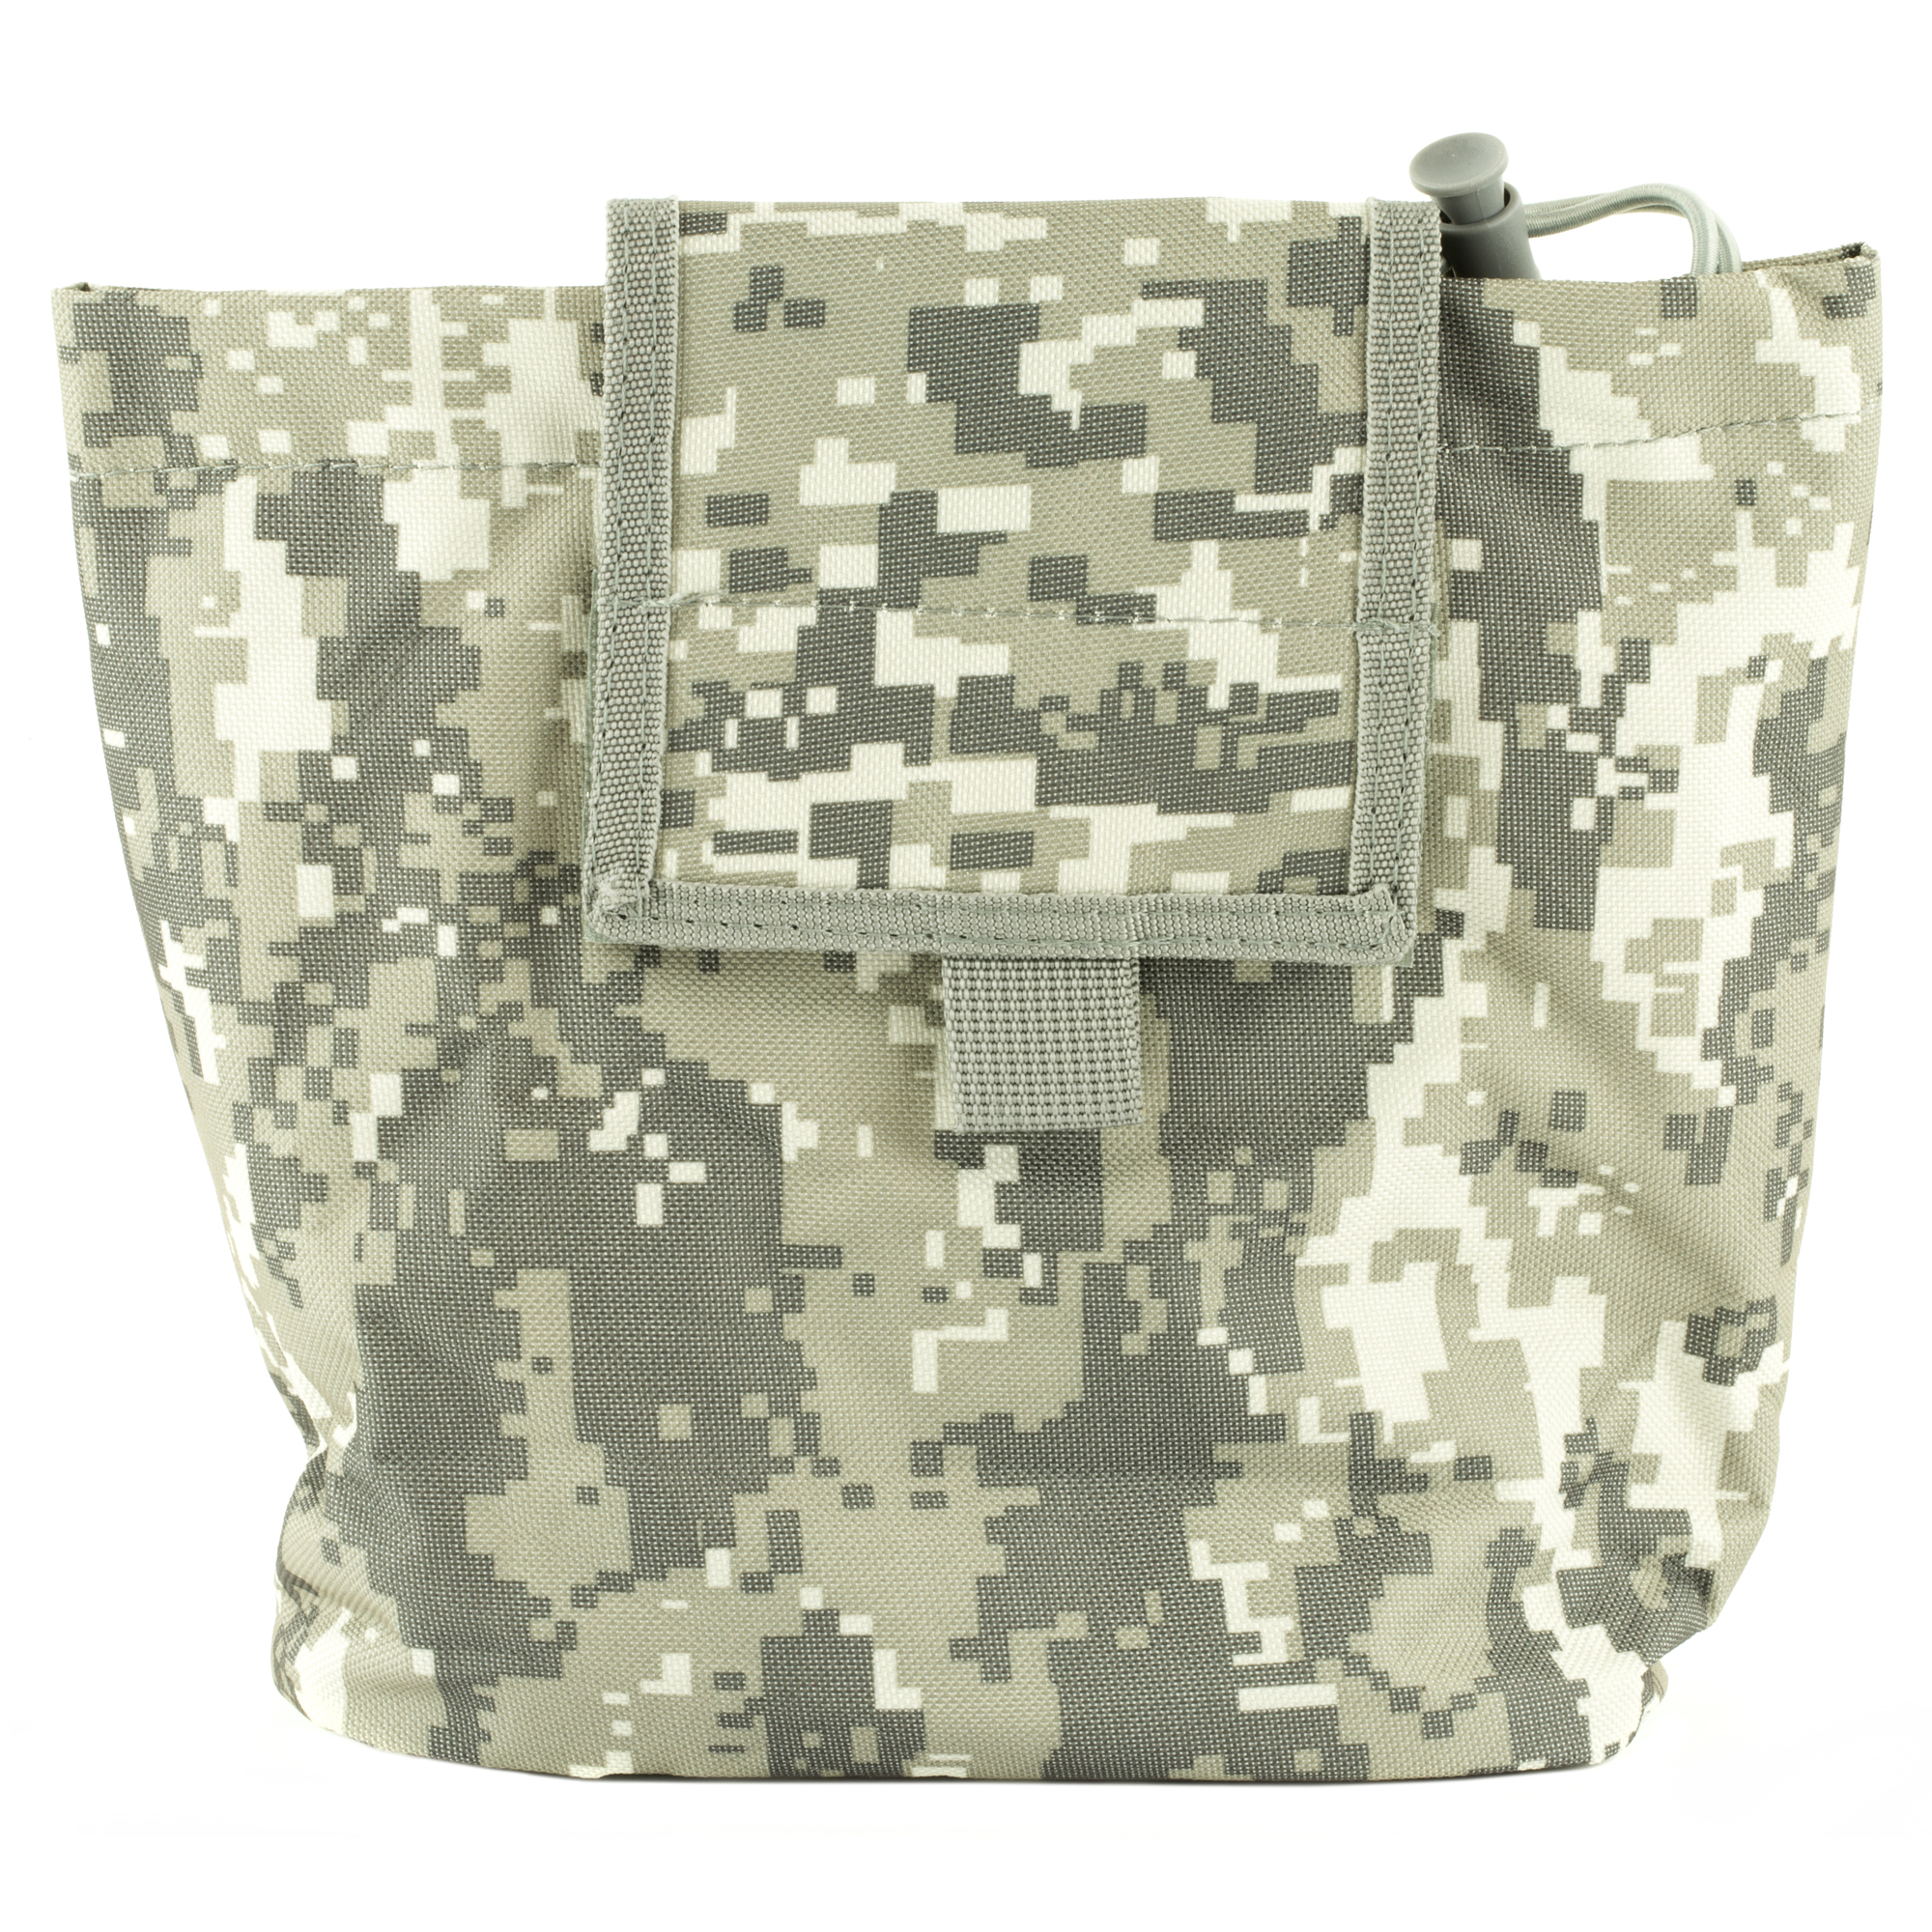 "The New VISM Folding Dump Pouch allows you to quickly store your Shooting Gear into a convenient pouch when you need it. The Dump Pouch folds flat into a compact size when not in use. Size Folded: 5""L X 5""H X 11/4""W. The Dump Pouch unfolds into a large pouch"" able to hold 7 AR or AK 30 round magazines. Size Opened: 71/2""L X 81/2""H X 31/2""W"